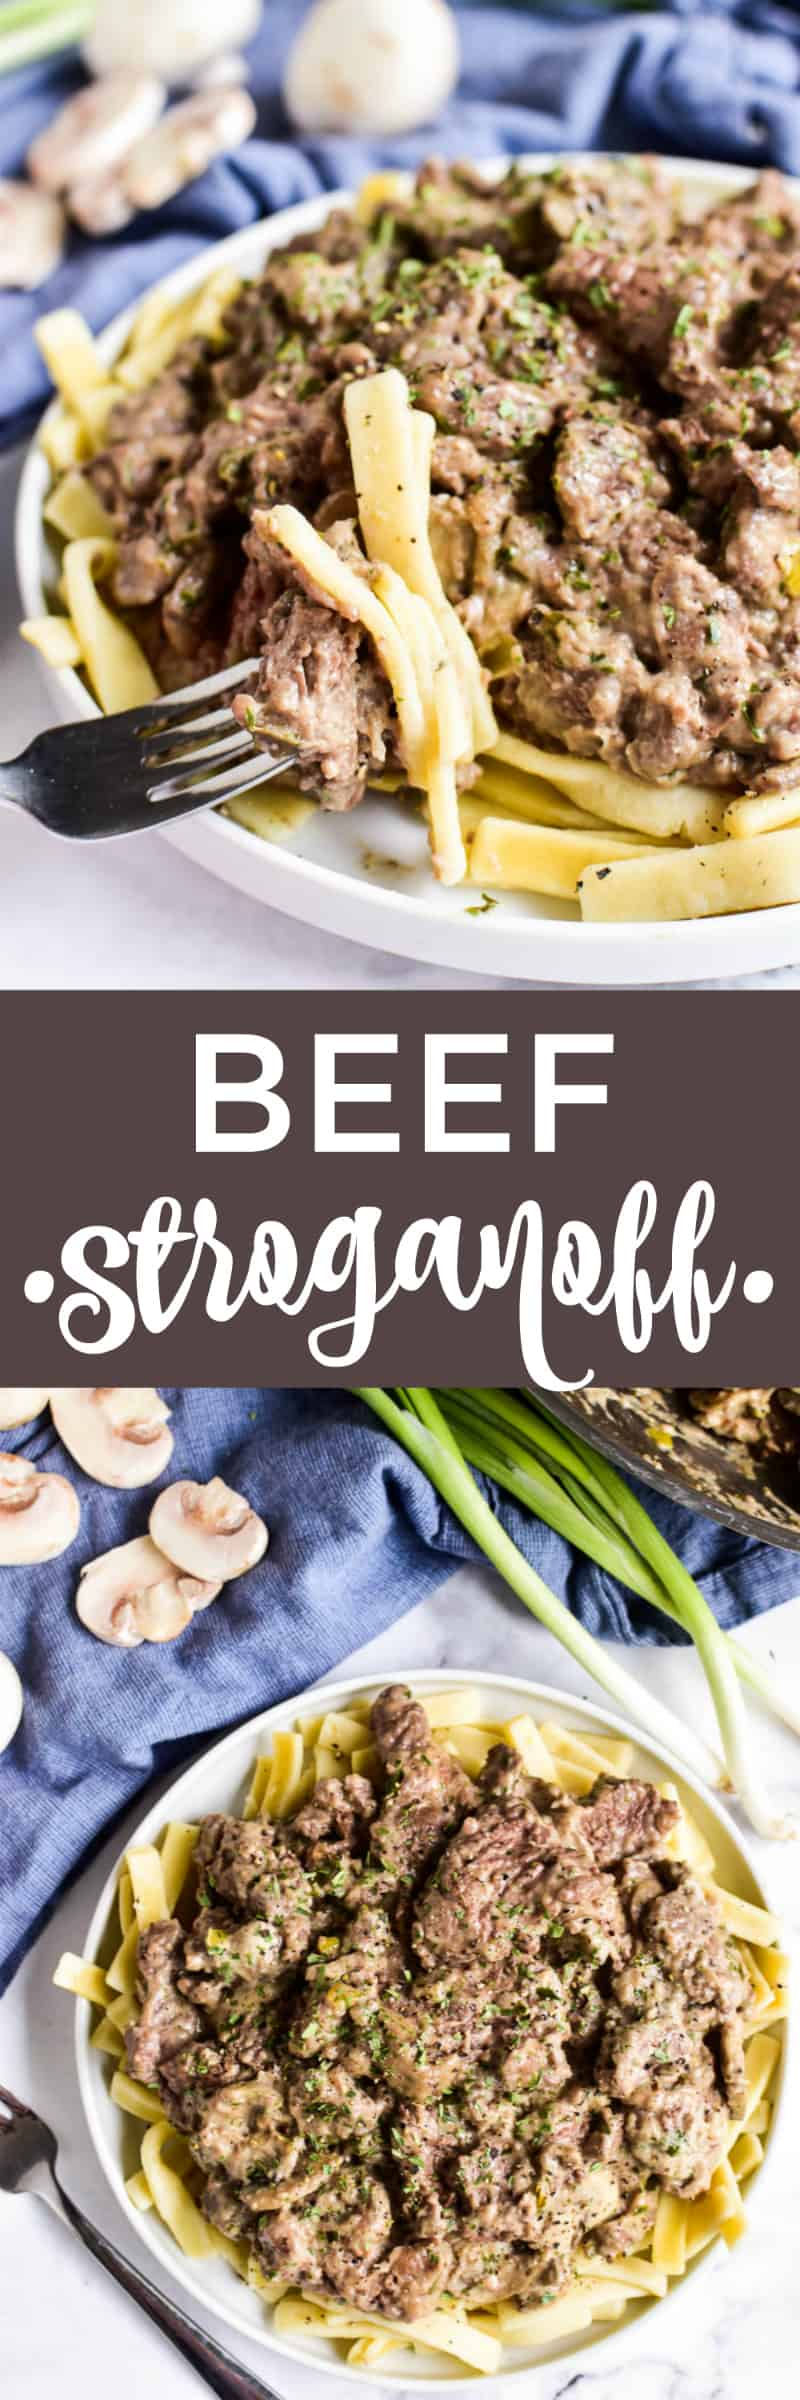 Beef Stroganoff Collage Image